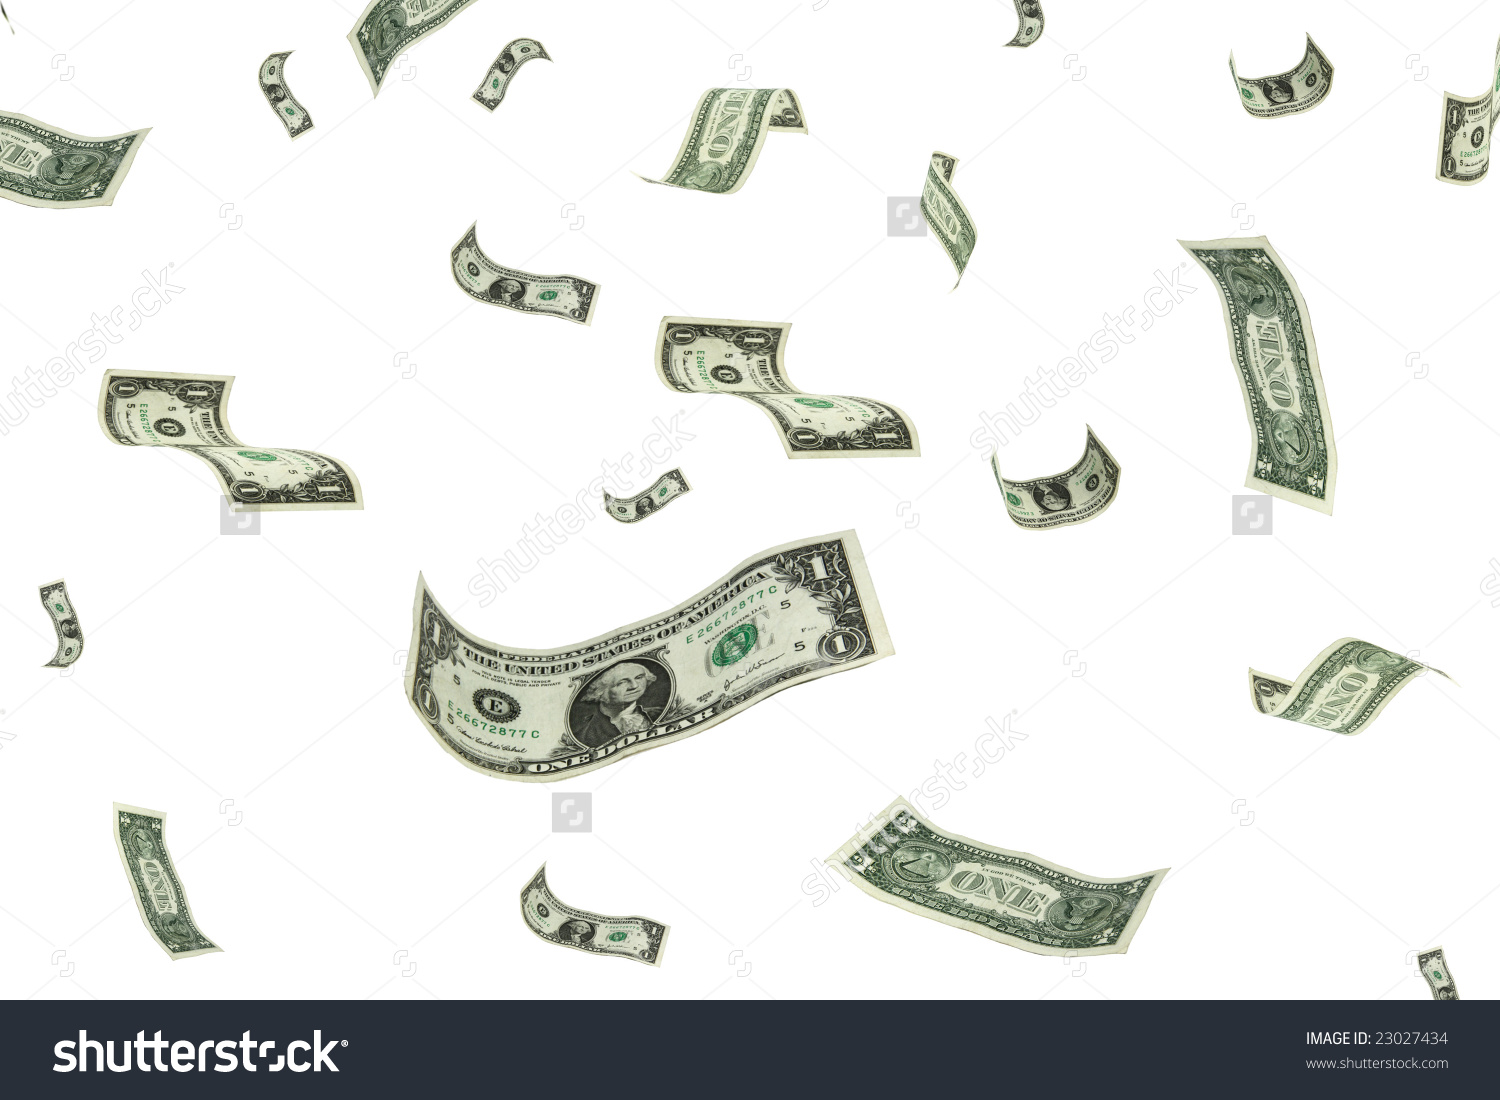 Money Falling Sky Over White Background Stock Photo 23027434.